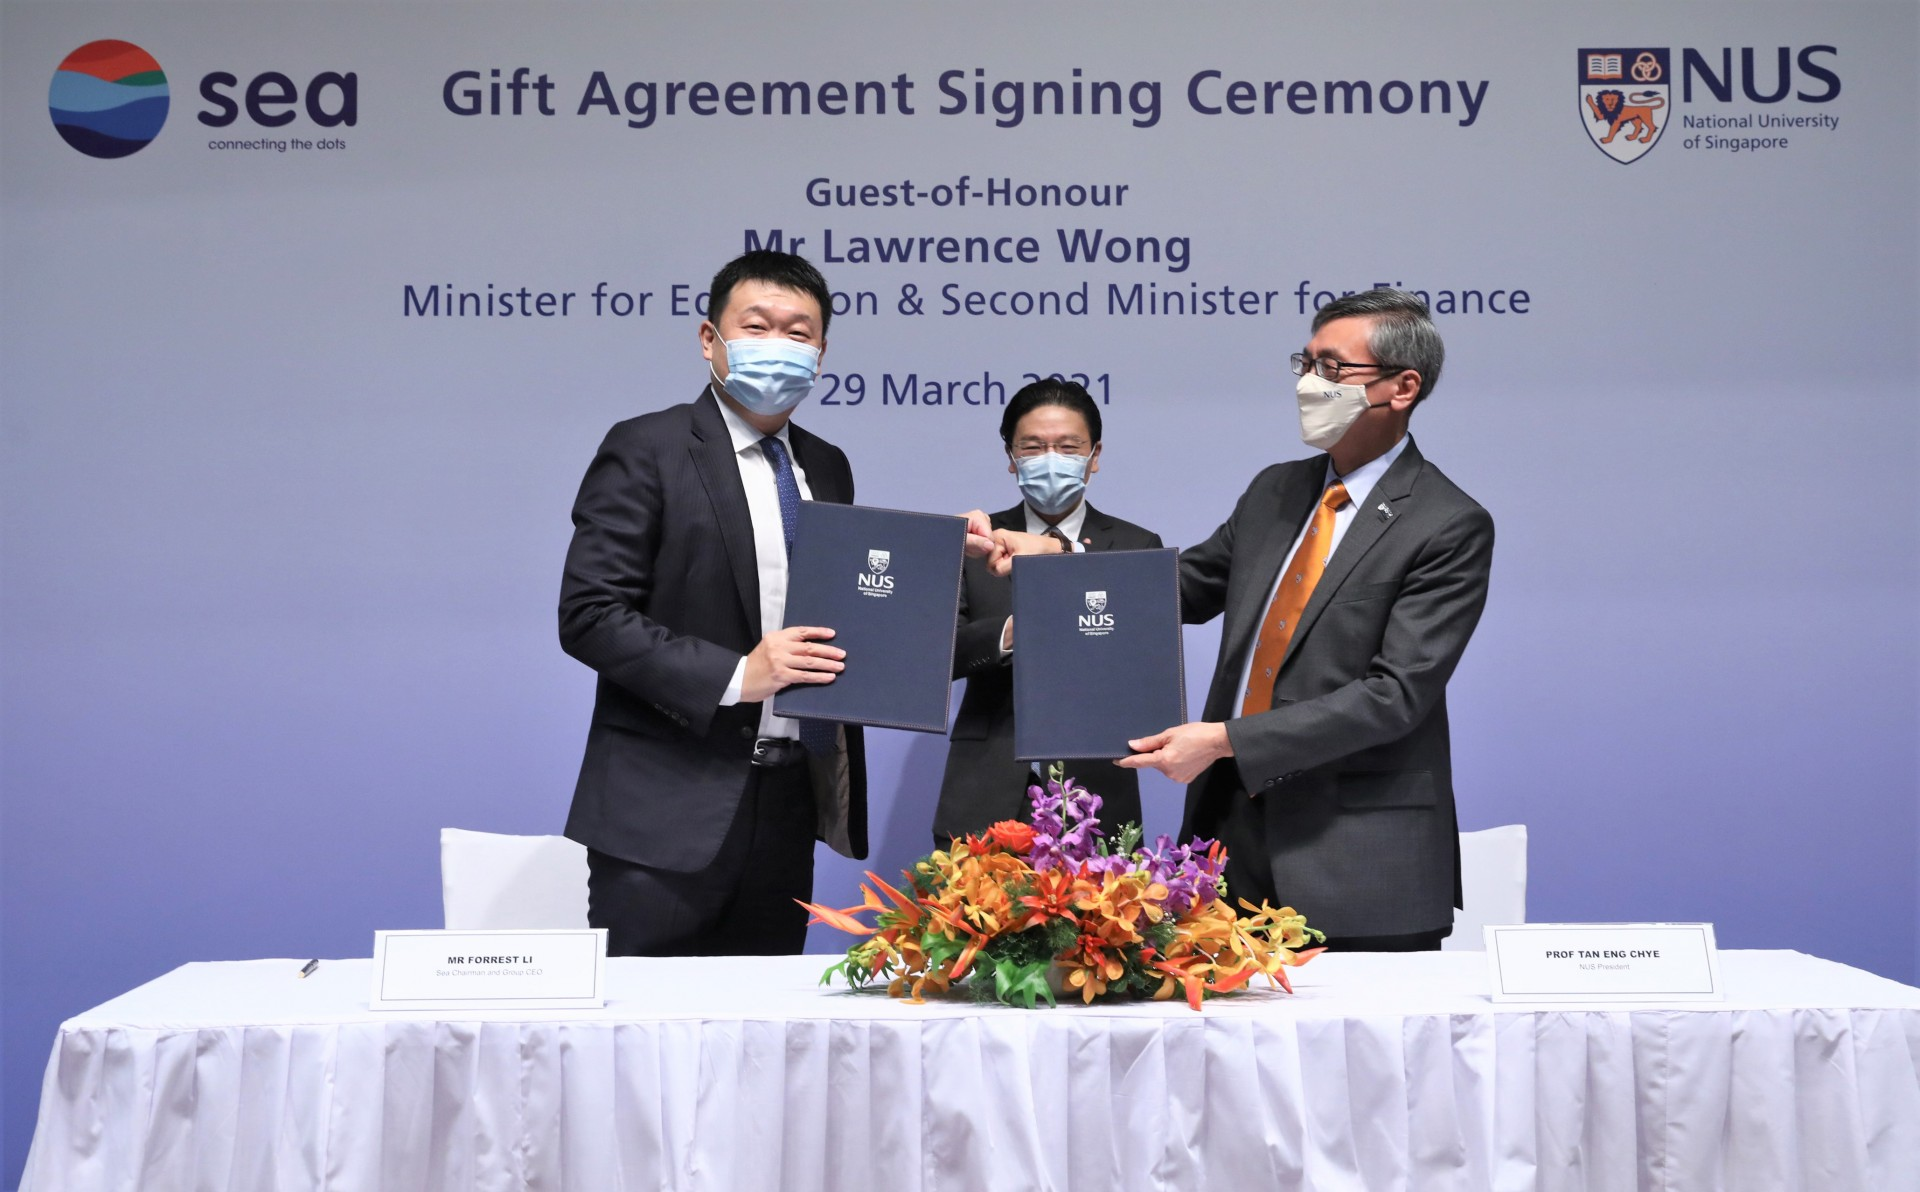 2021 0329 Sea-NUS Gift Agreement Signing Ceremony